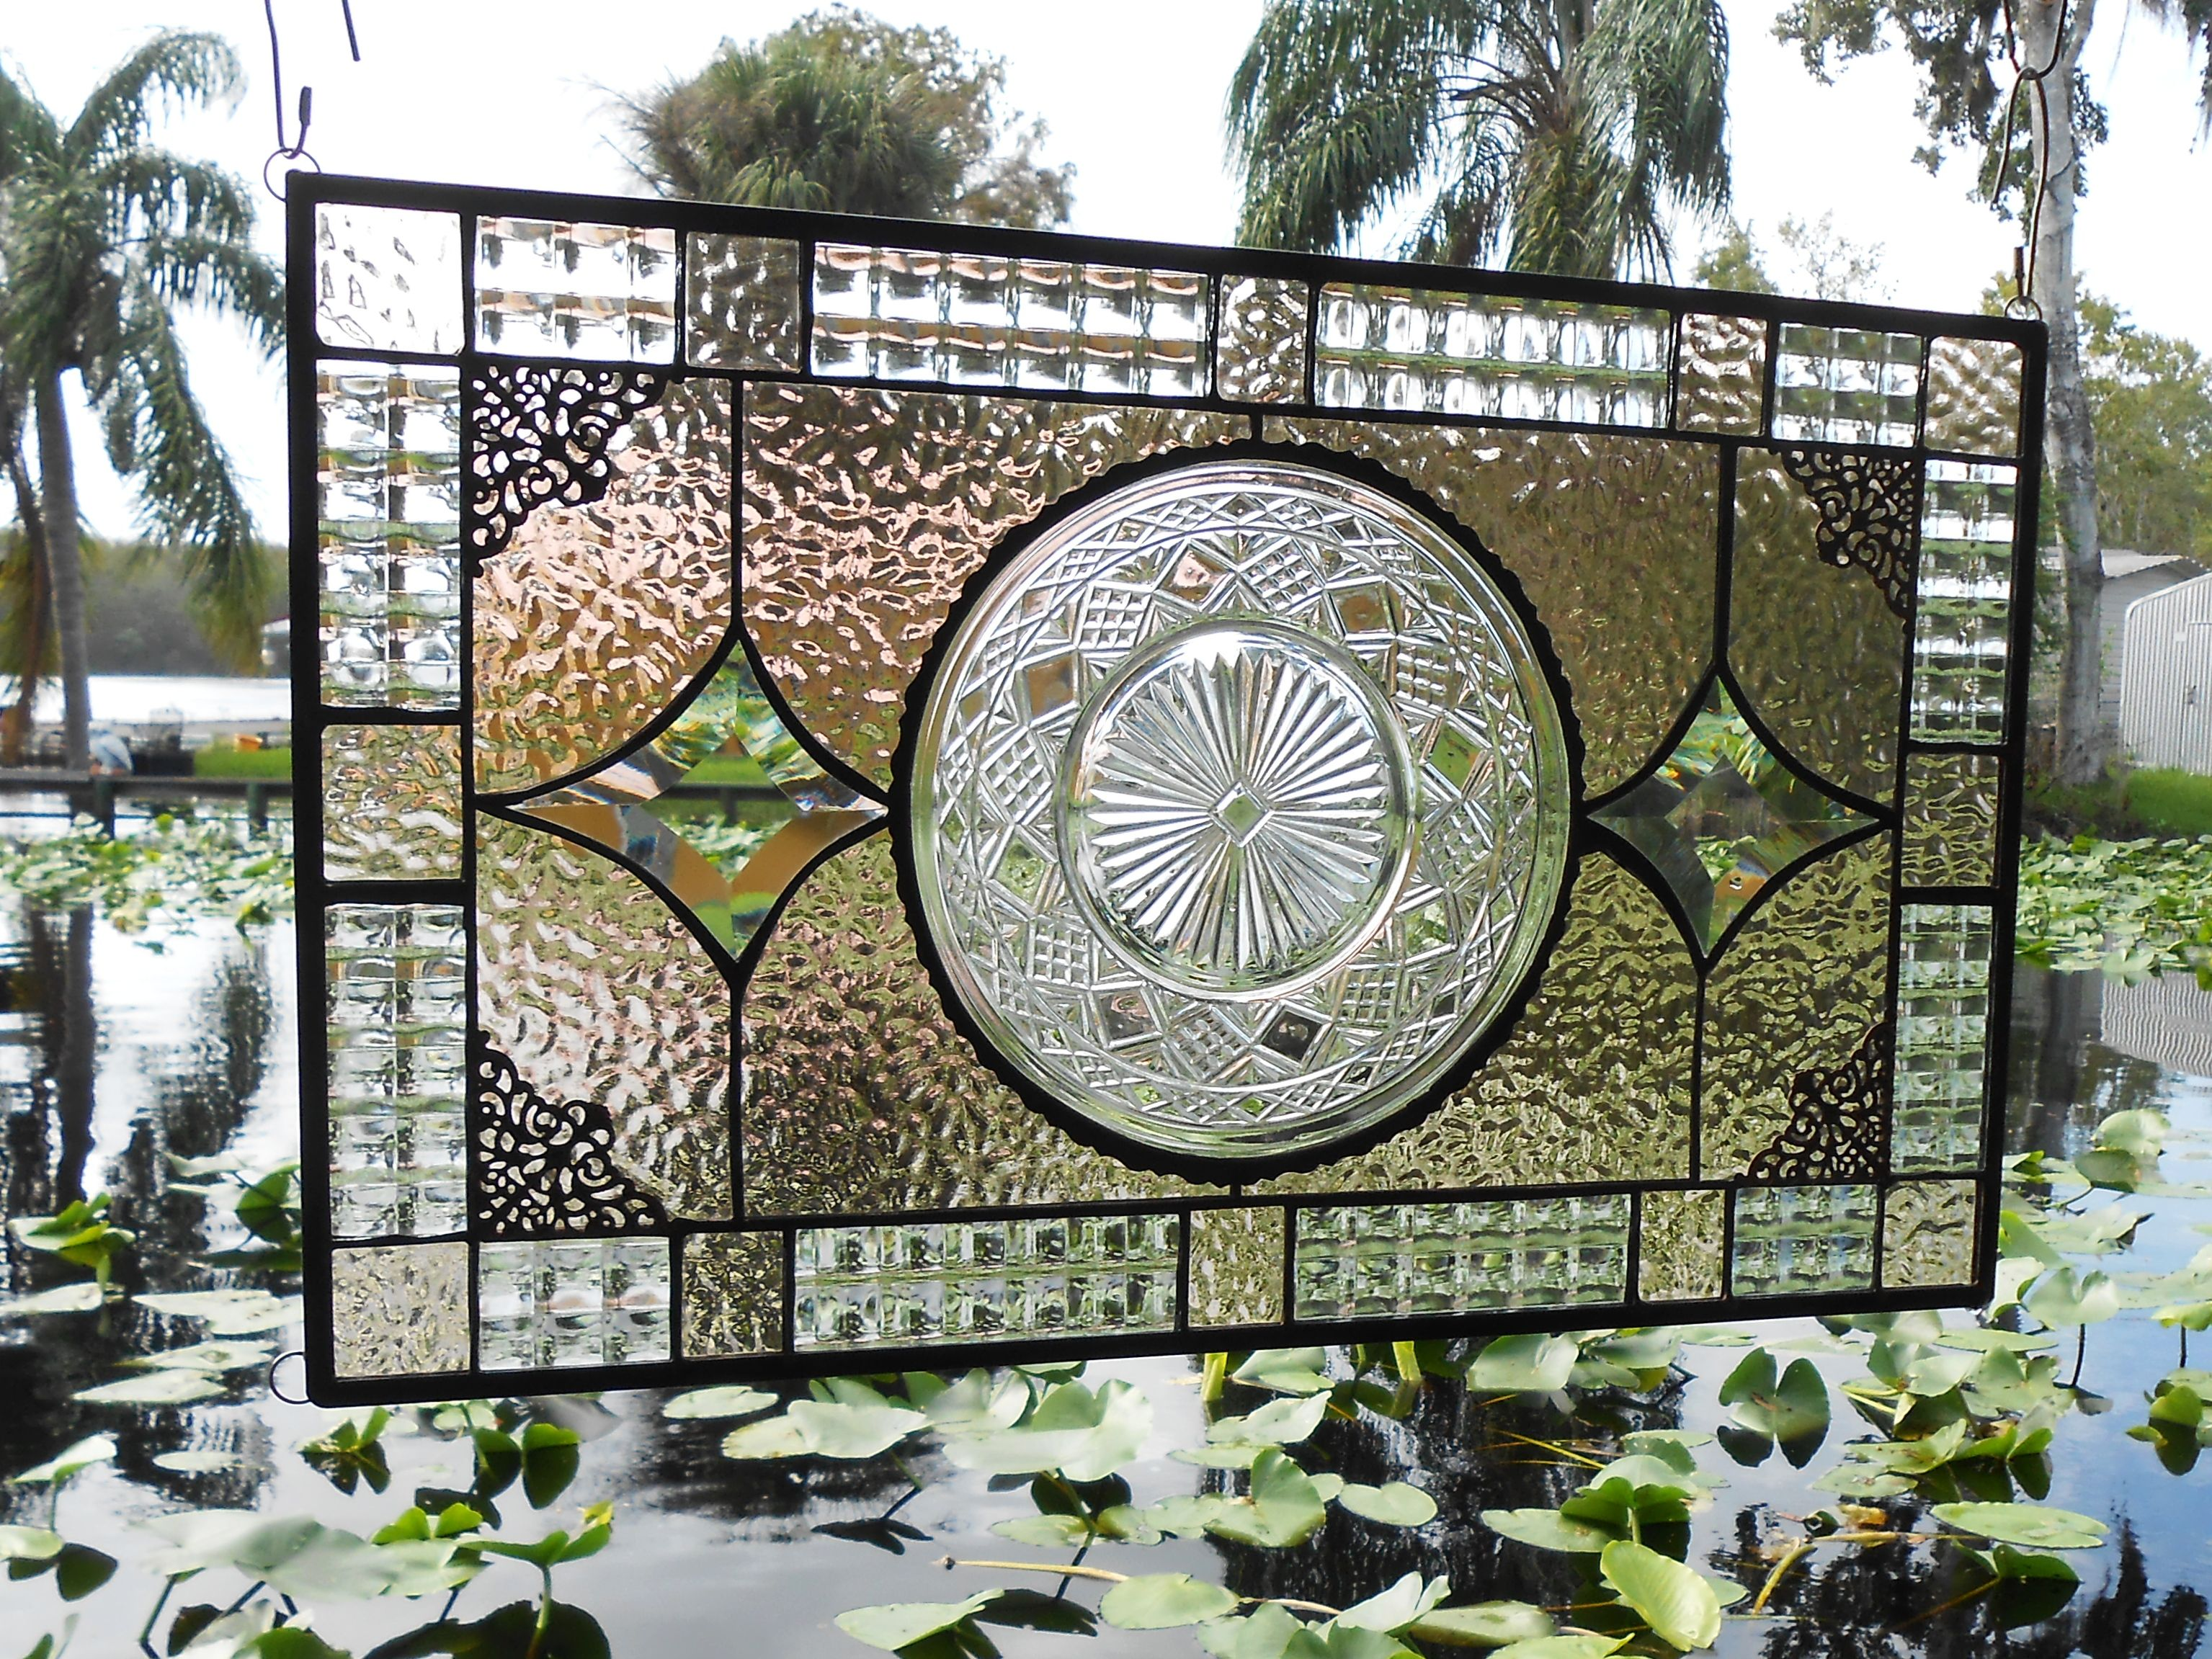 Buy Hand Made Recycled Depression Glass Imperial Stained Glass Window Panel Antique Stained Glass Transom Window Made To Order From Artfulfolk Stained Glass Custommade Com